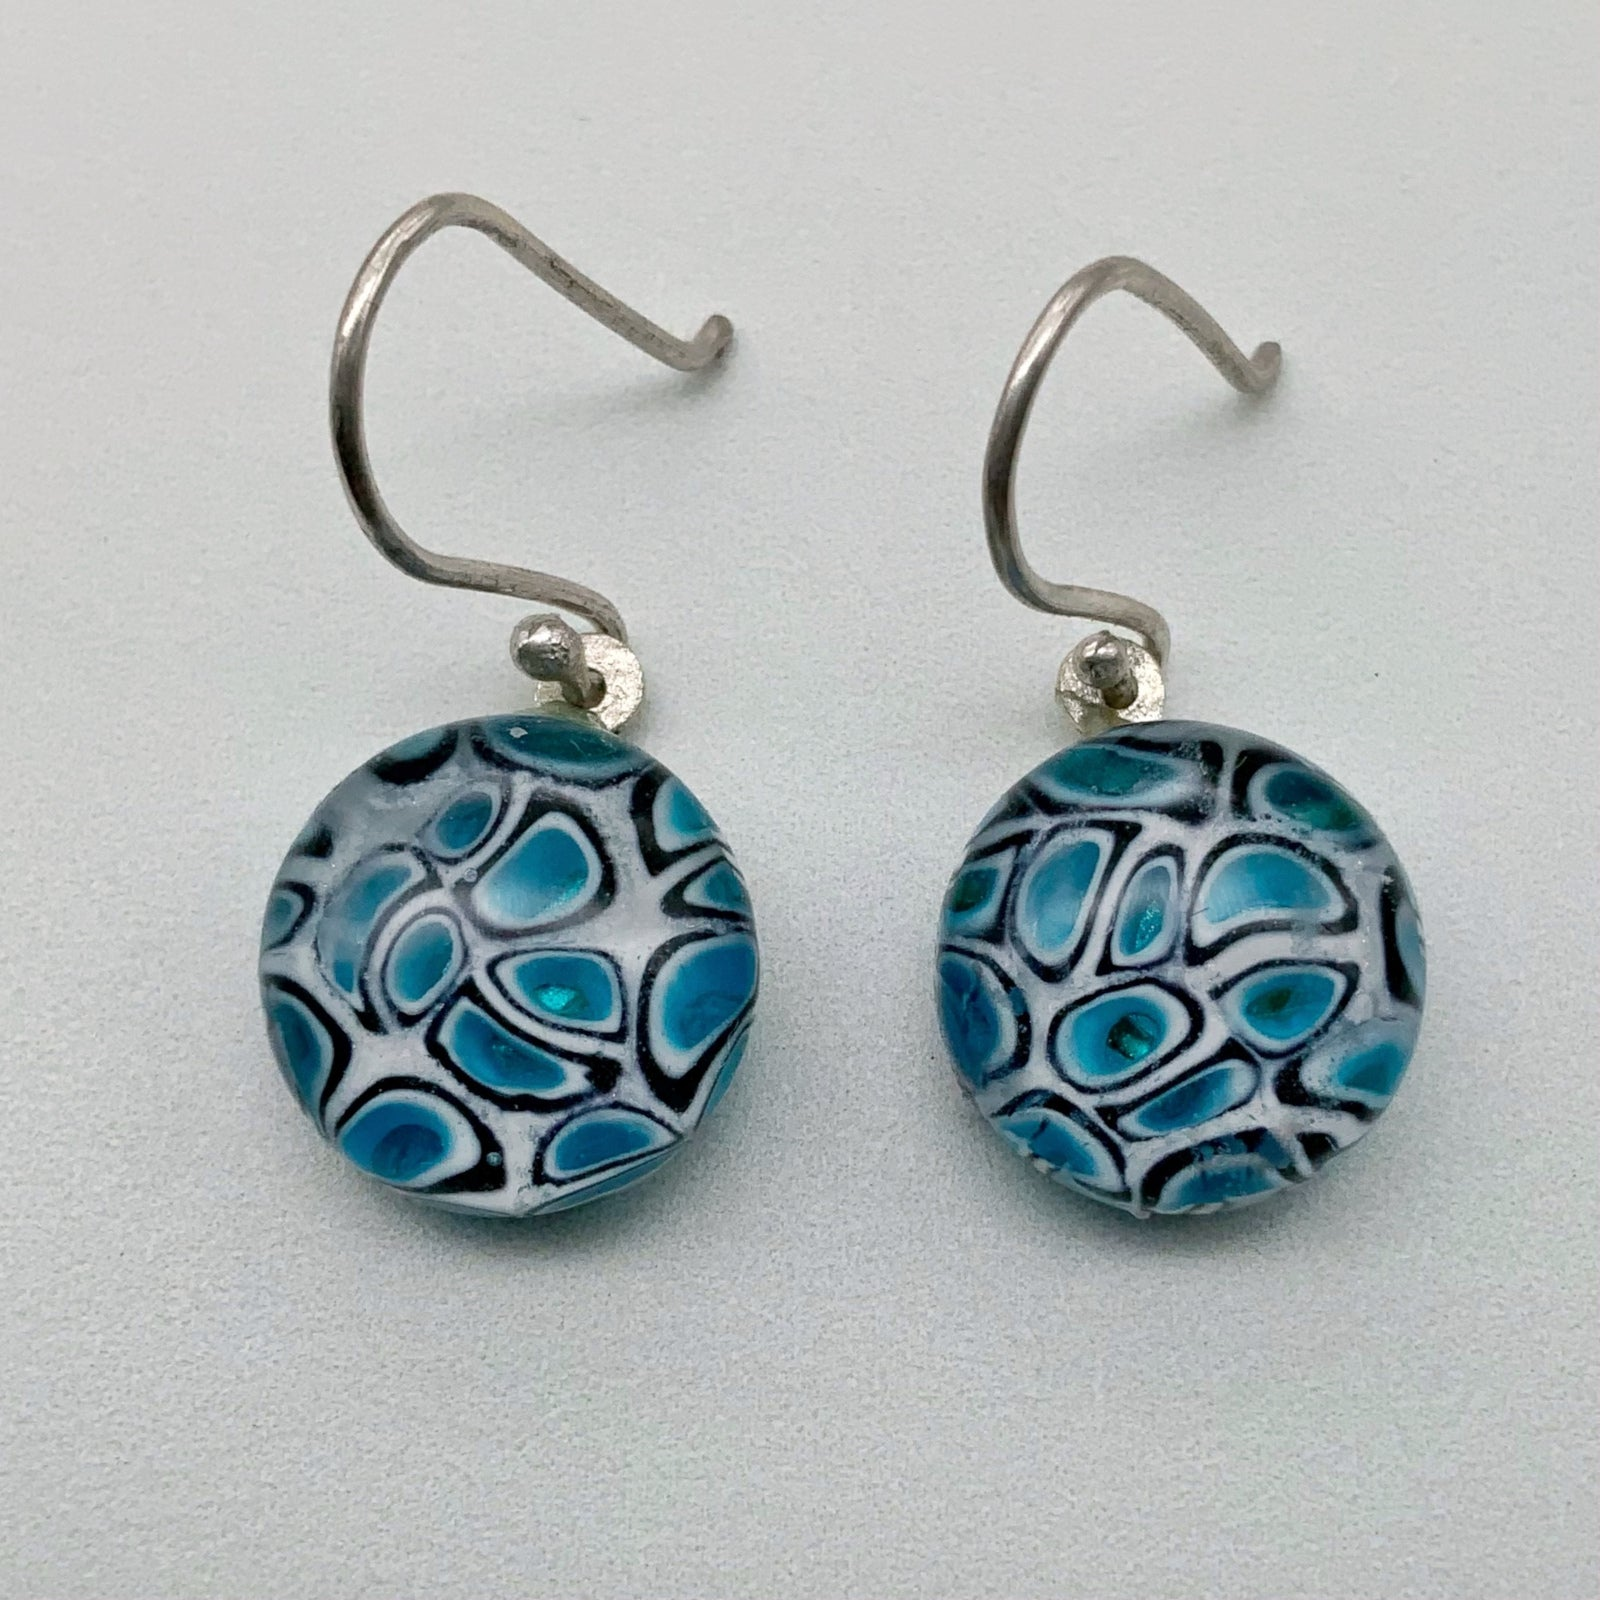 HiveLine glass dangle earrings  - Black & white around Turquoise